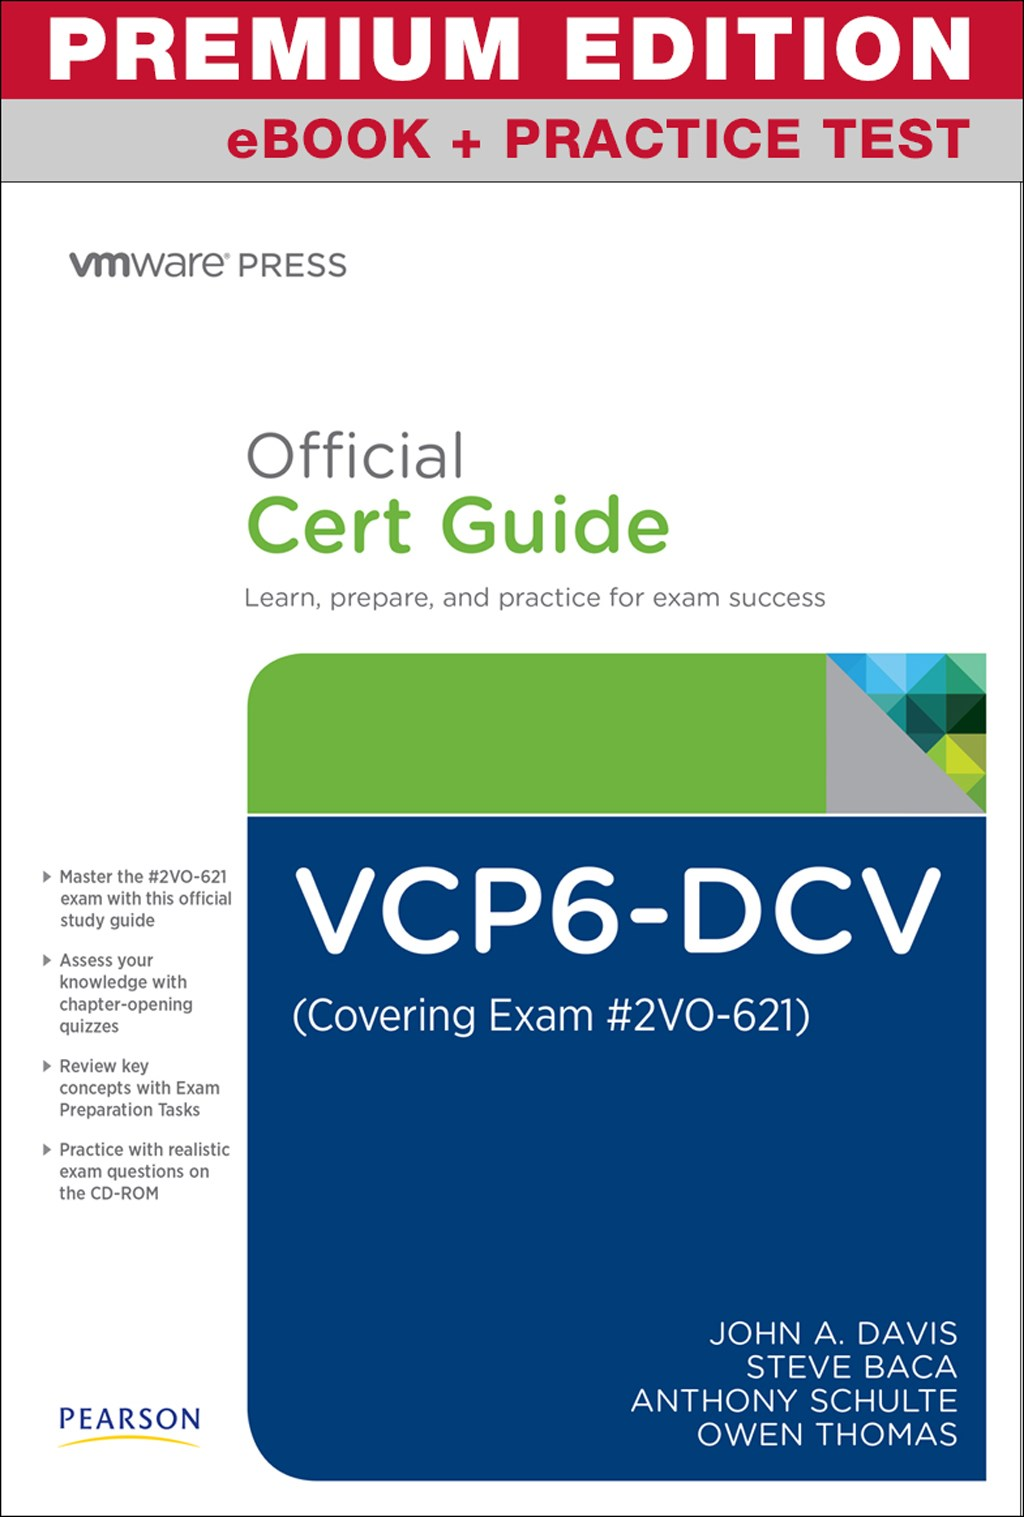 VCP6-DCV Official Cert Guide (Exam #2V0-621) Premium Edition and Practice Test